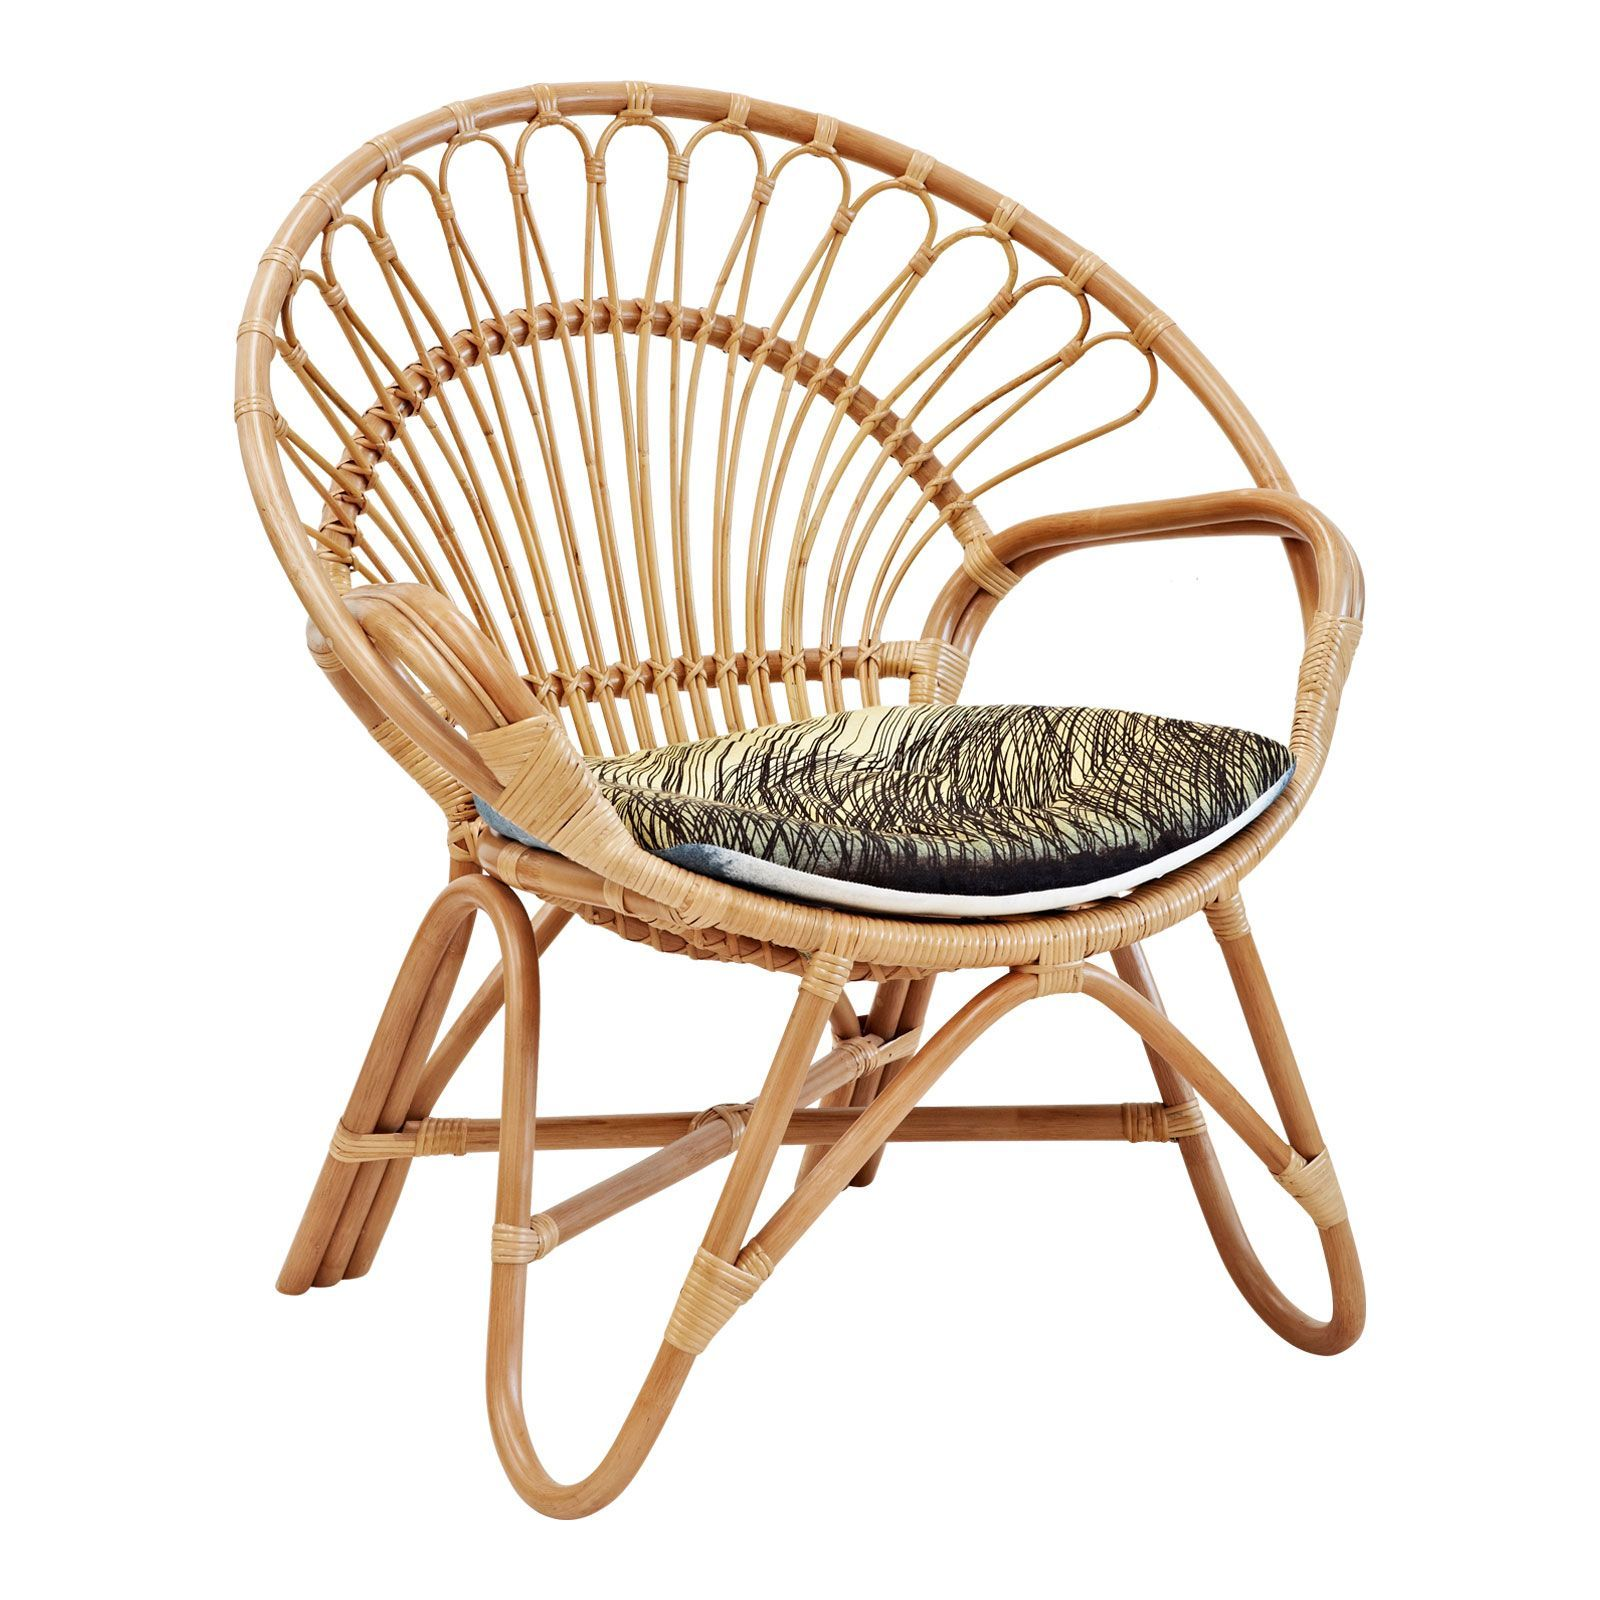 36 Reference Of Round Wicker Chair Base In 2020 Wicker Chair Round Wicker Chair Round Chair